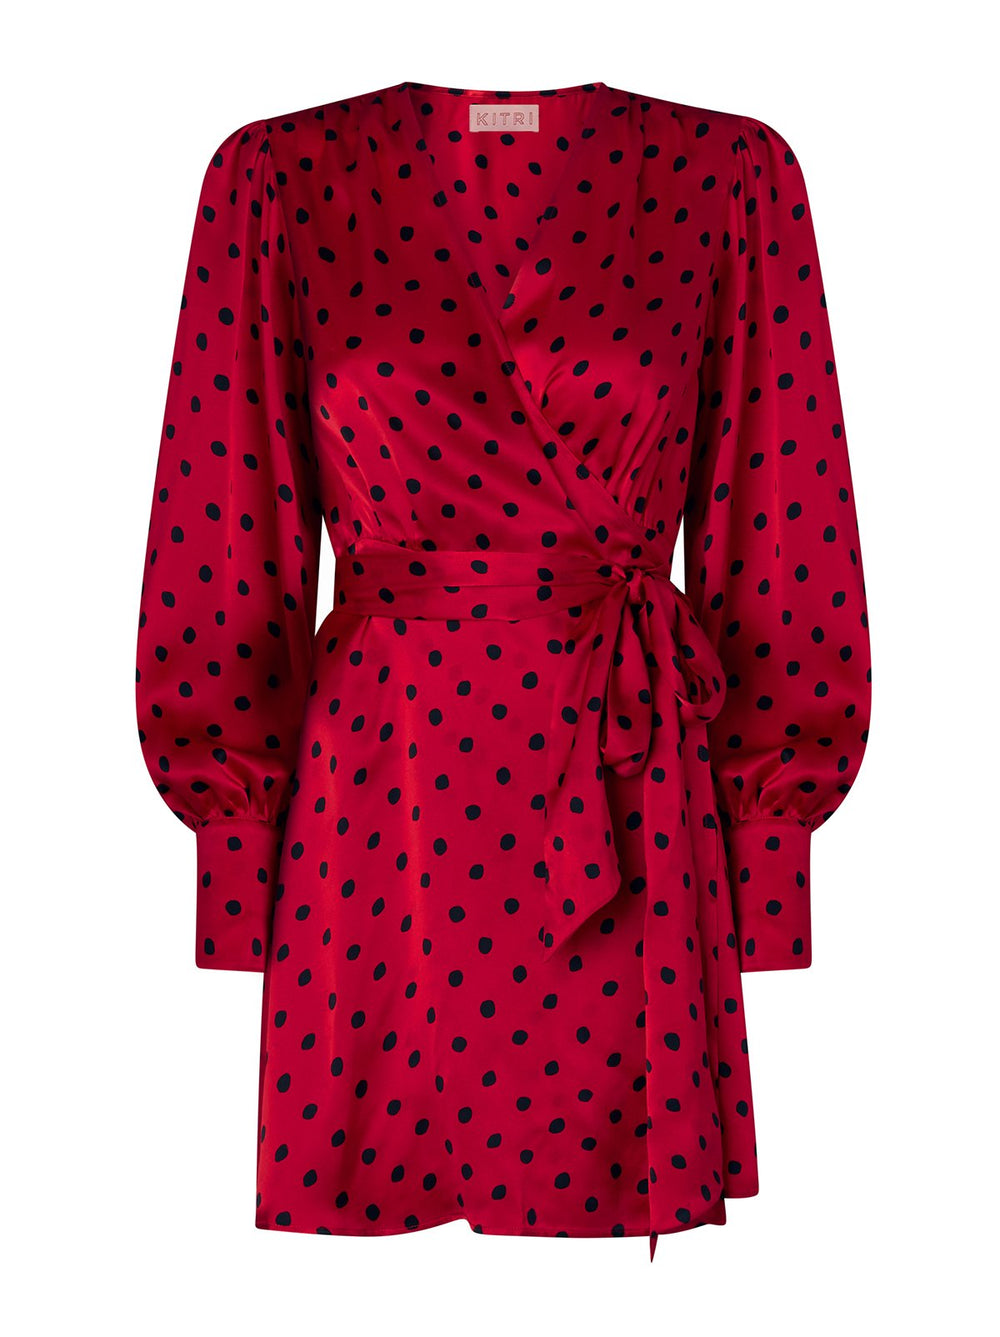 Rebecca Red Polka Dot Mini Dress by KITRI Studio